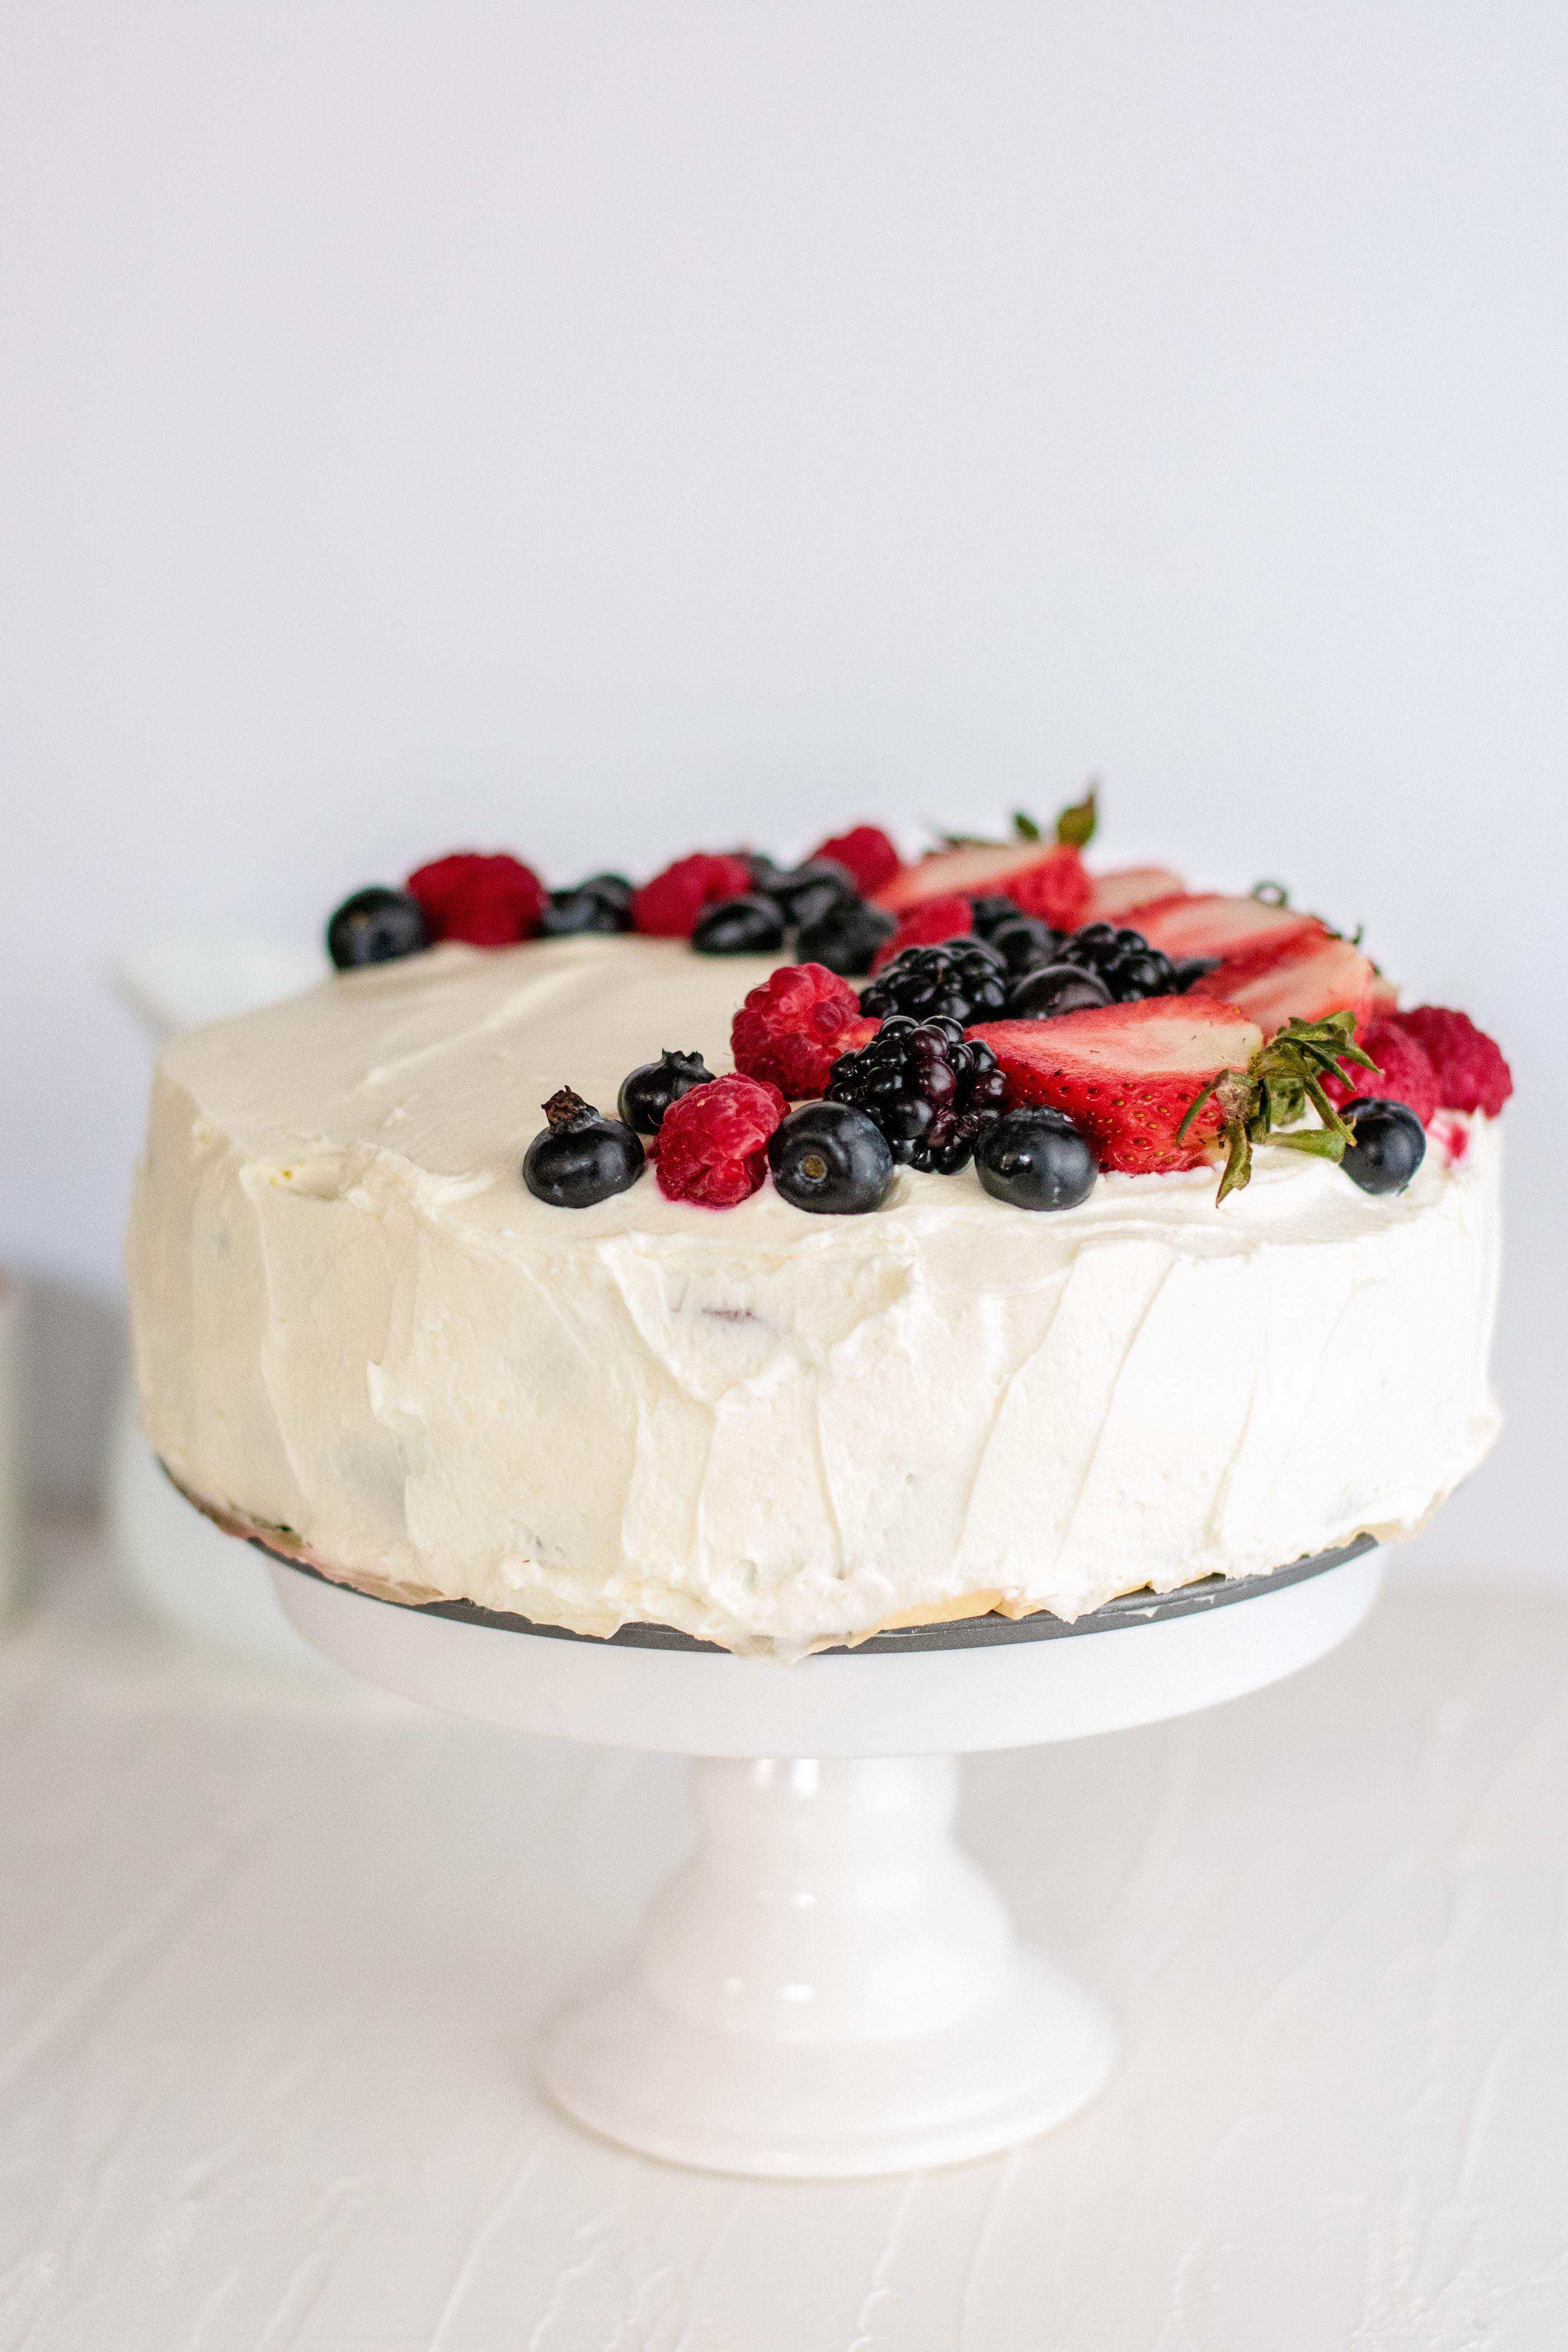 Keto Chantilly Cake a white cake with berries covering the top on a cake stand with a white background